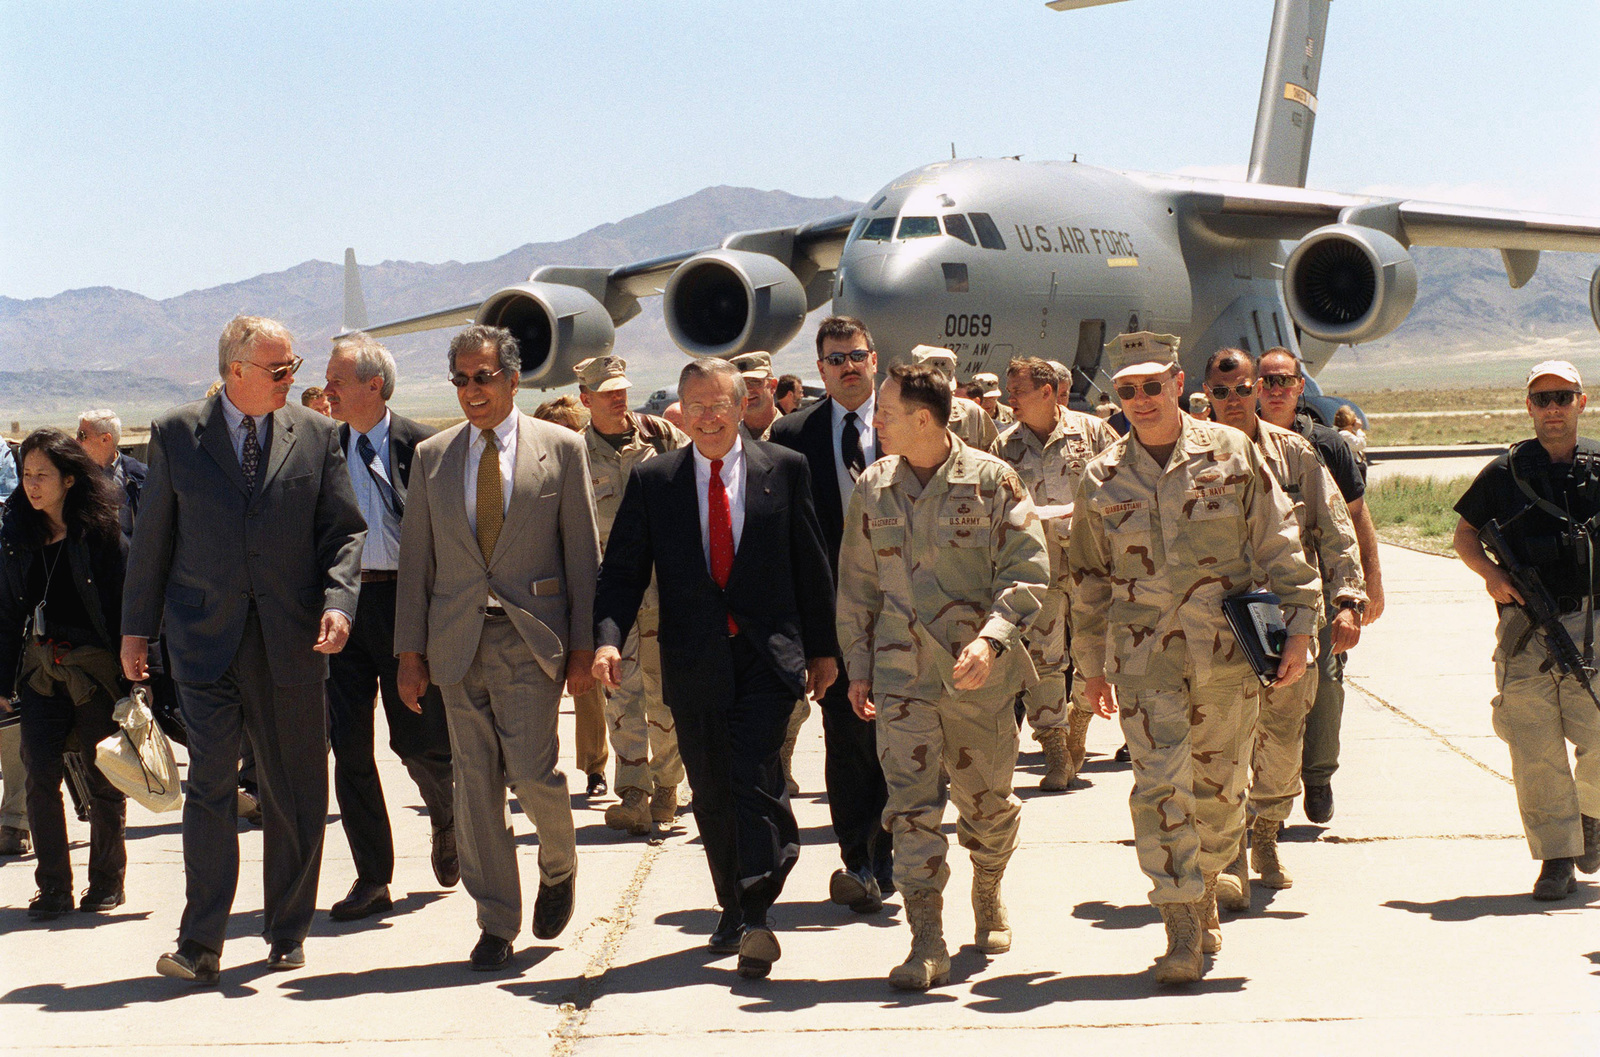 US Dignitaries offload from a US Air Force (USAF) C-17A Globemaster III aircraft after arriving at Bagram Air Base (AB), Afghanistan, to attend a briefing conducted by the Coalition Joint Task Force Commander. Pictured front row left to right, US Ambassador to Afghanistan, The Honorable Robert Finn; Presidential Special Envoy to Afghanistan, The Honorable Zalmay Khalilzad; US Secretary of Defense (SECDEF), The Honorable Donald H. Rumsfeld; US Army (USA) Major General (MGEN) Franklin L. Hagenback, Commander General Coalition Task Force; and US Navy (USN) Vice Admiral (VADM) Edmund Giambastiani, SENIOR Military Assistant to Secretary Rumsfeld